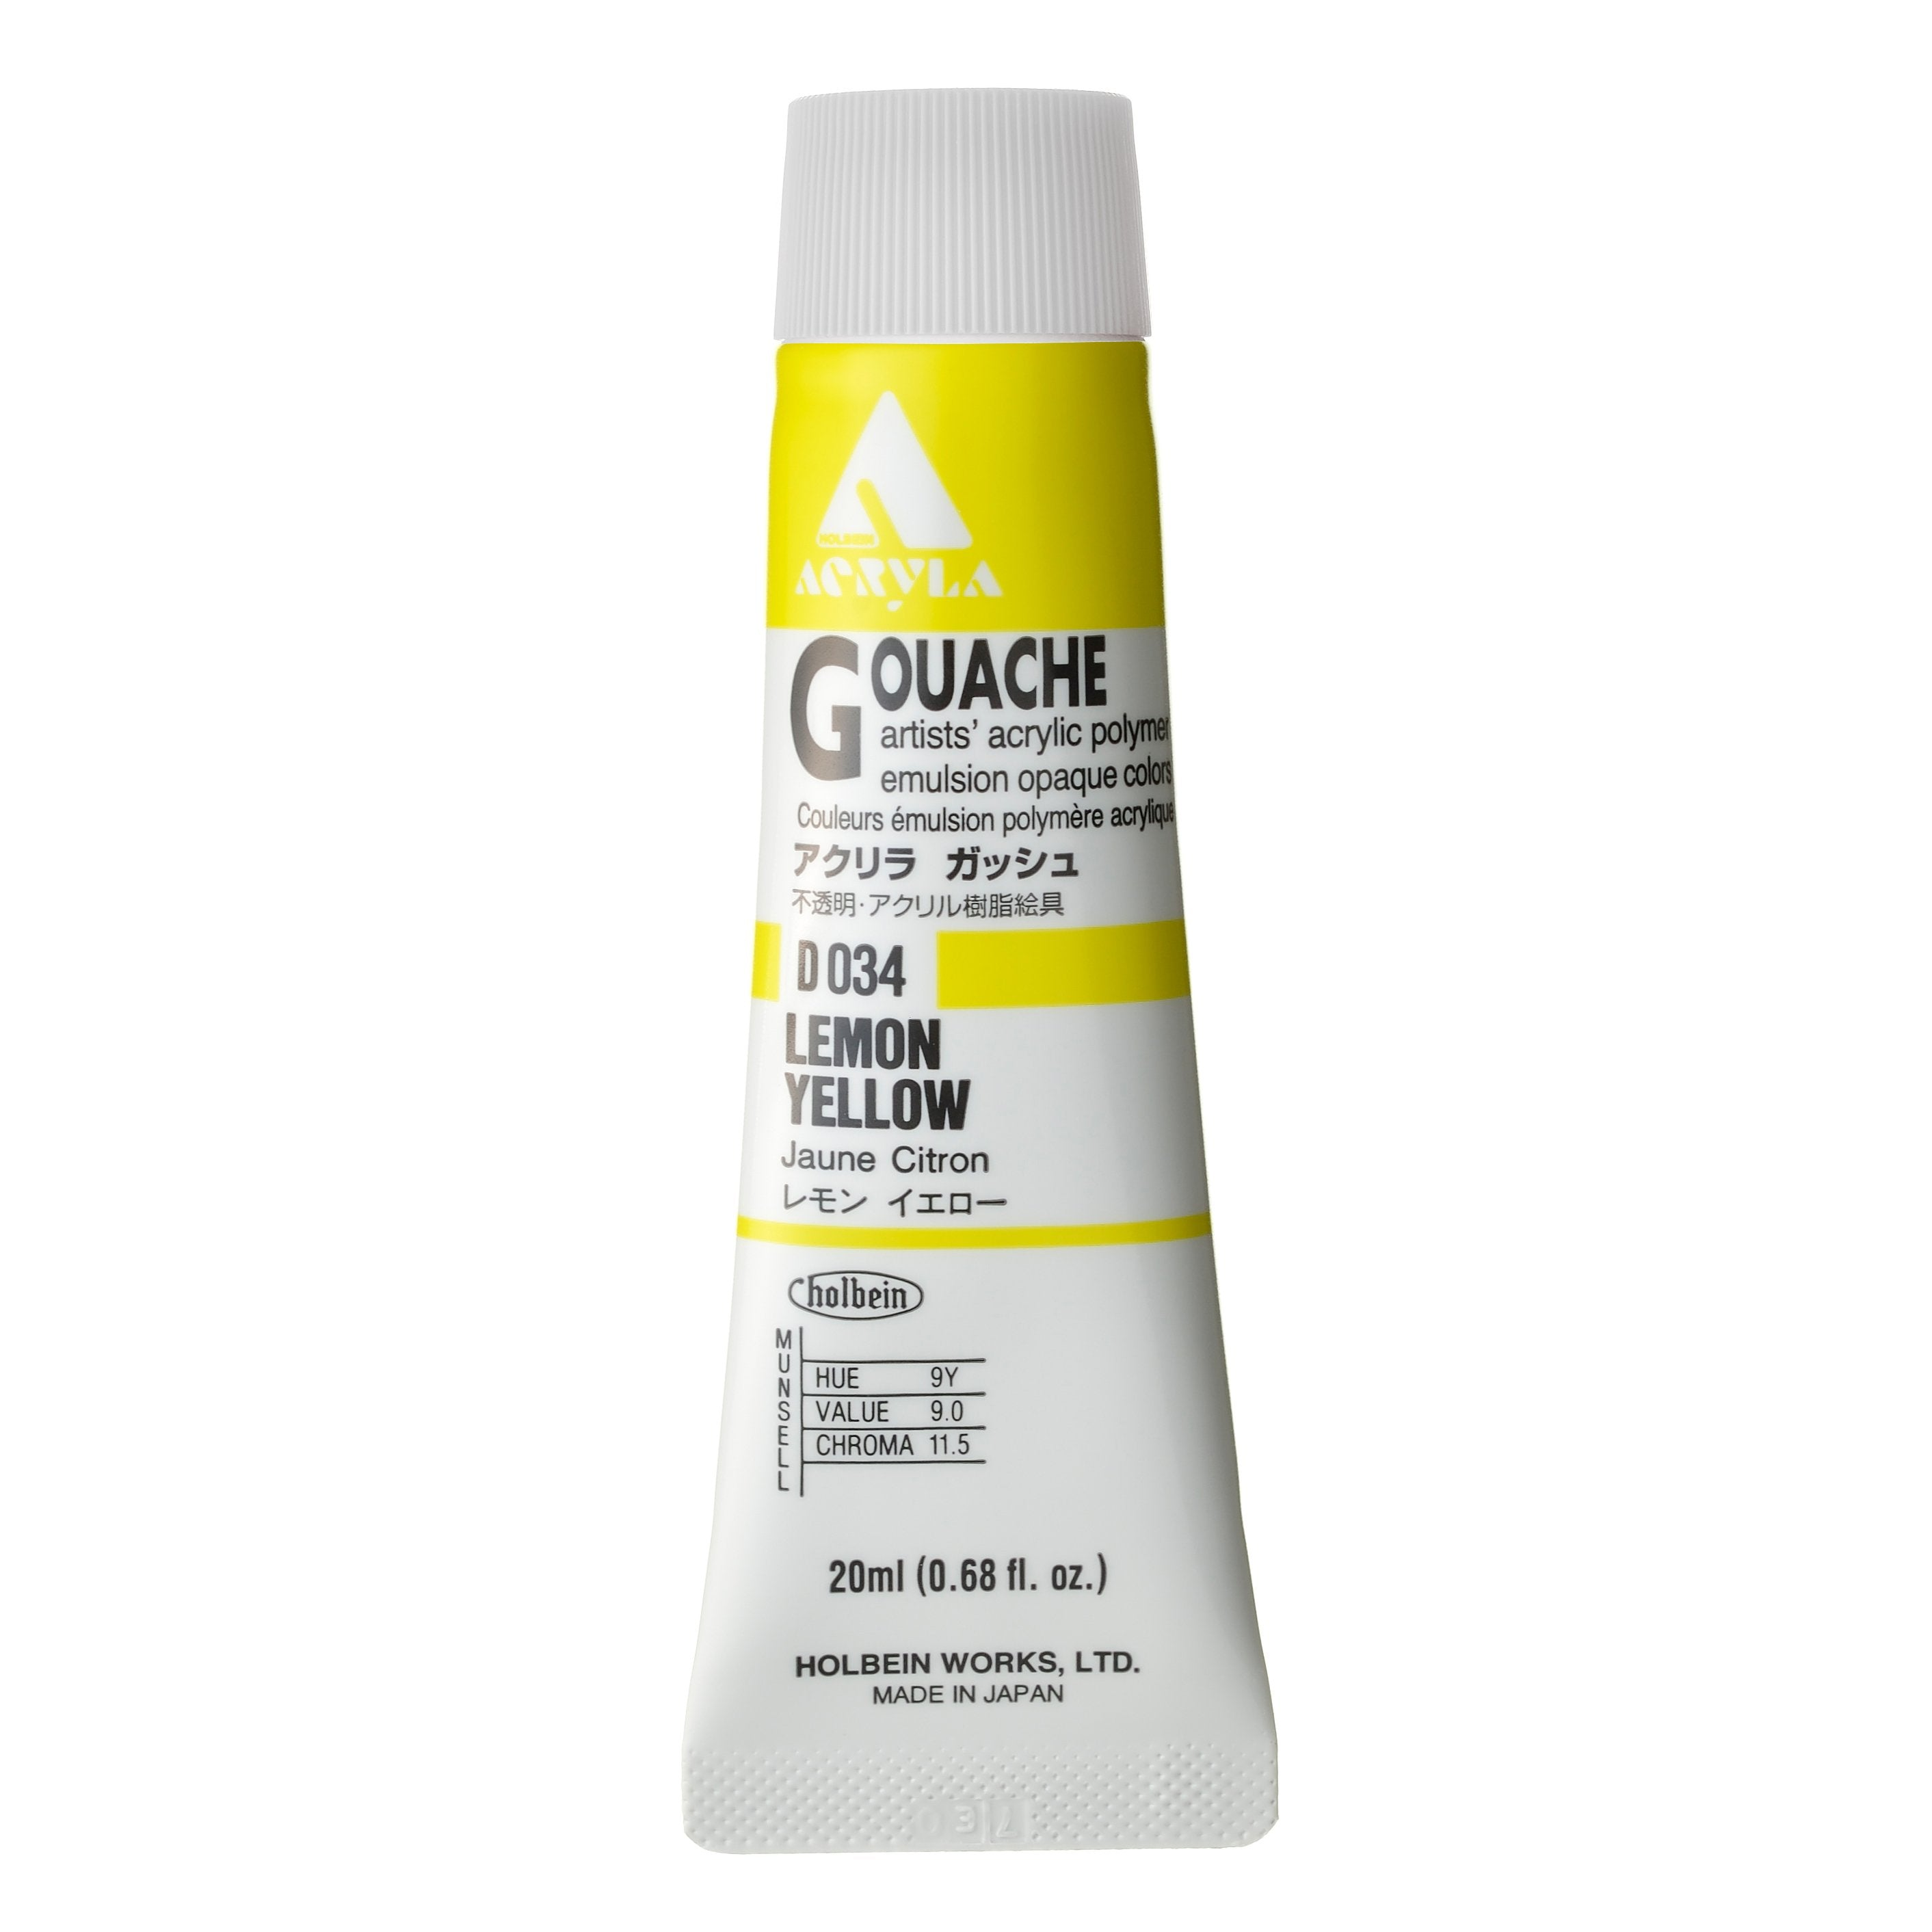 Holbein Acryla Gouache, 20ml, Lemon Yellow